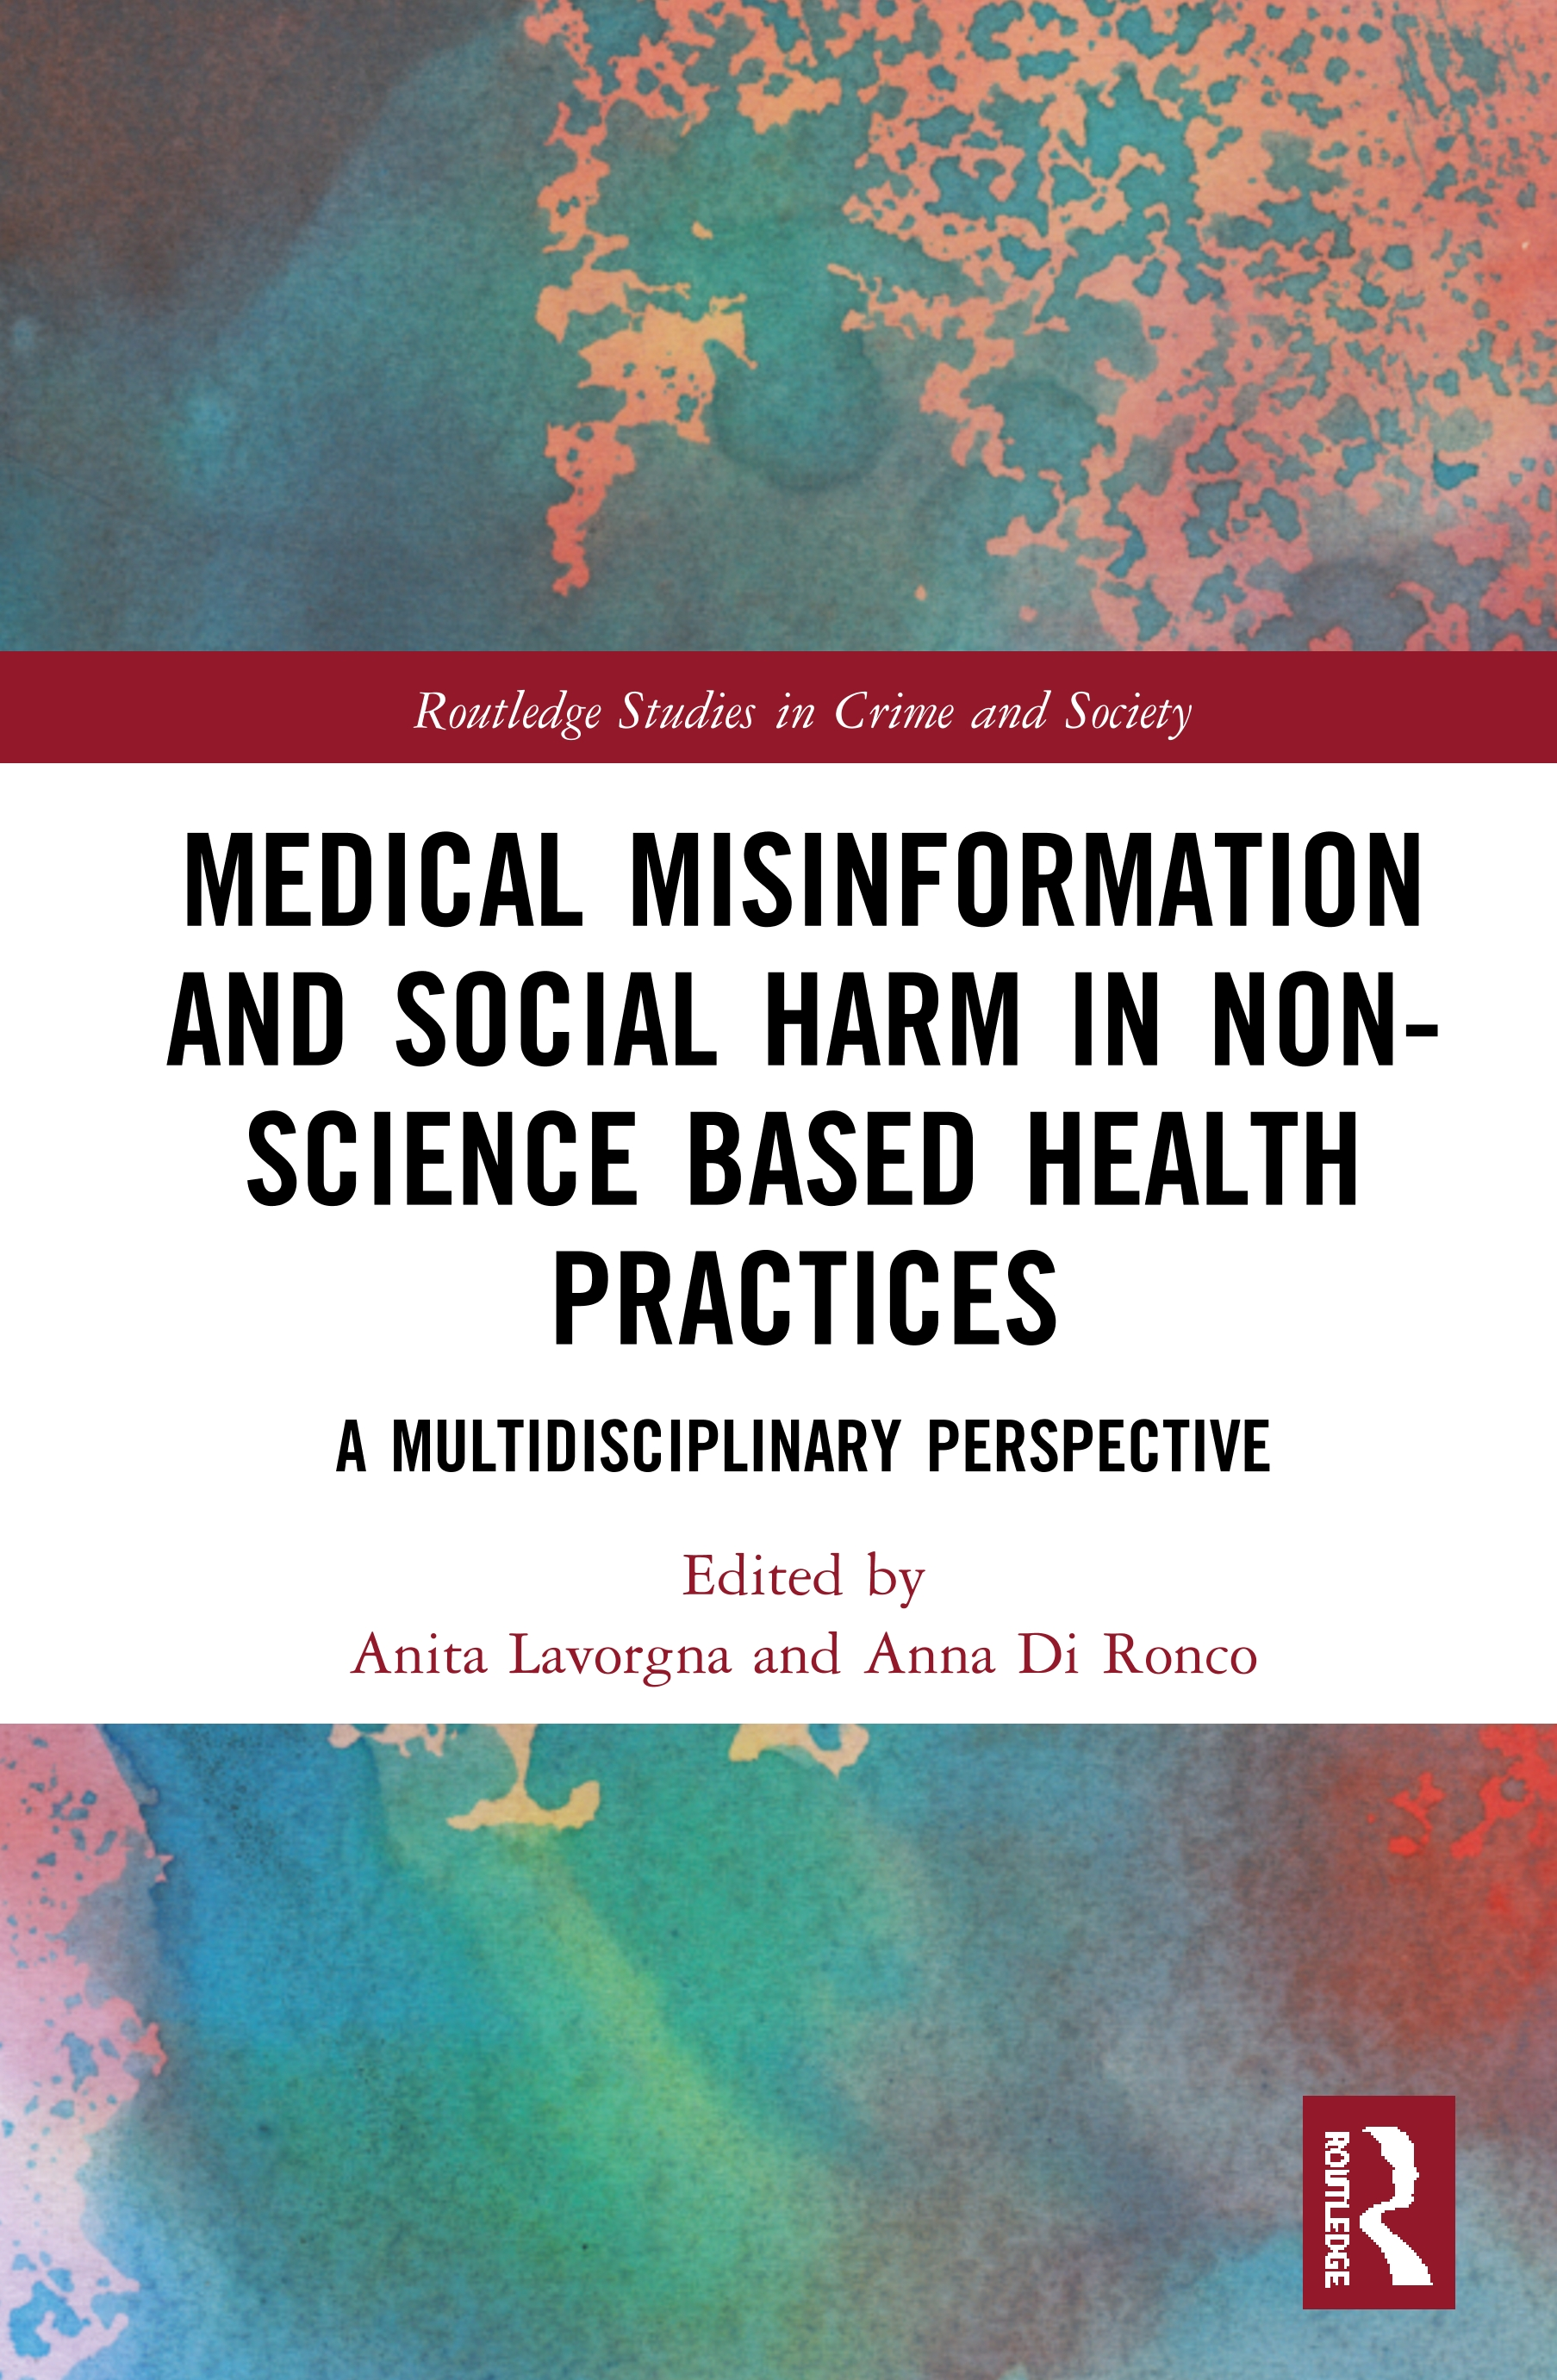 Medical Misinformation and Social Harm in Non-Science Based Health Practices: A Multidisciplinary Perspective book cover